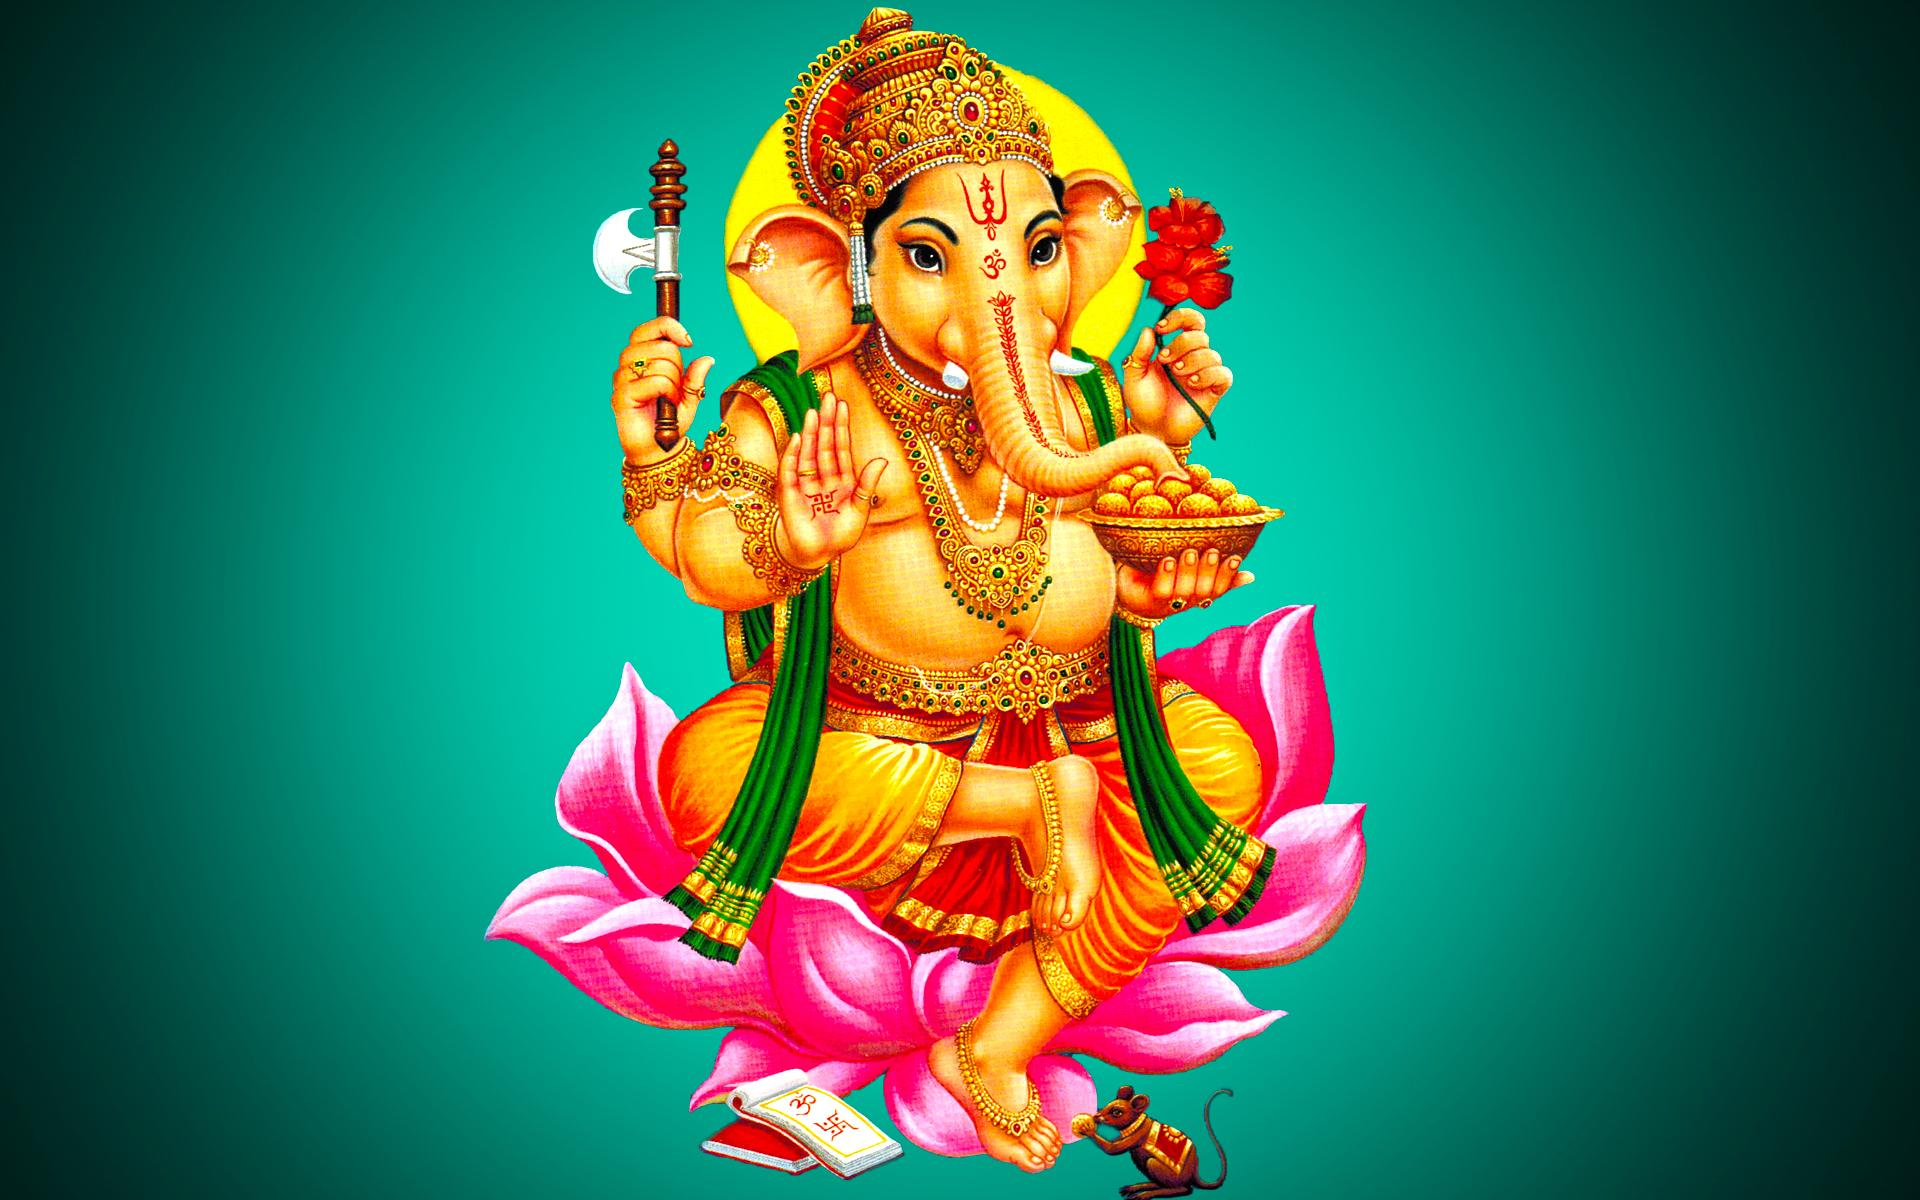 Ganesh Images, Photos, HD Pictures & Interesting Facts